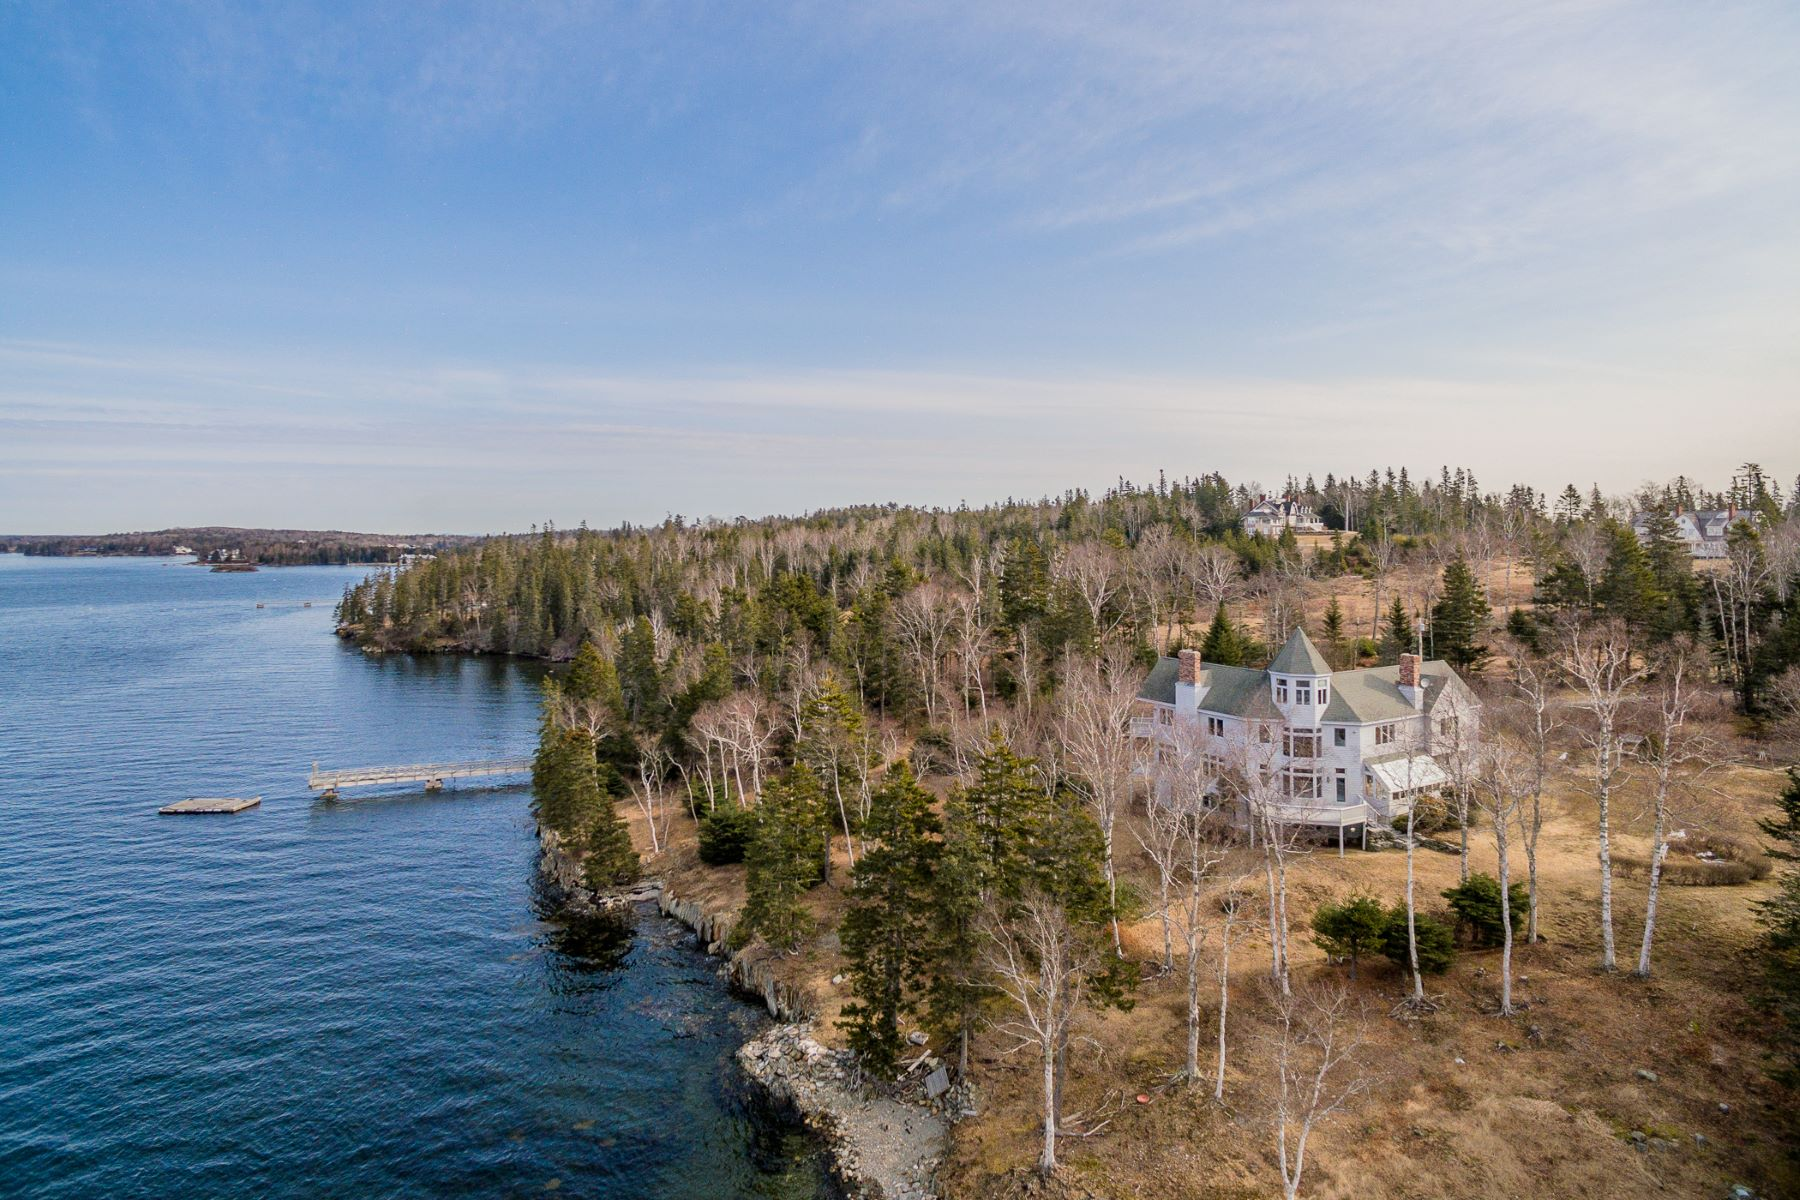 Single Family Home for Sale at 903 Pendleton Point Road 903 Pendleton Point Road Islesboro, Maine 04848 United States